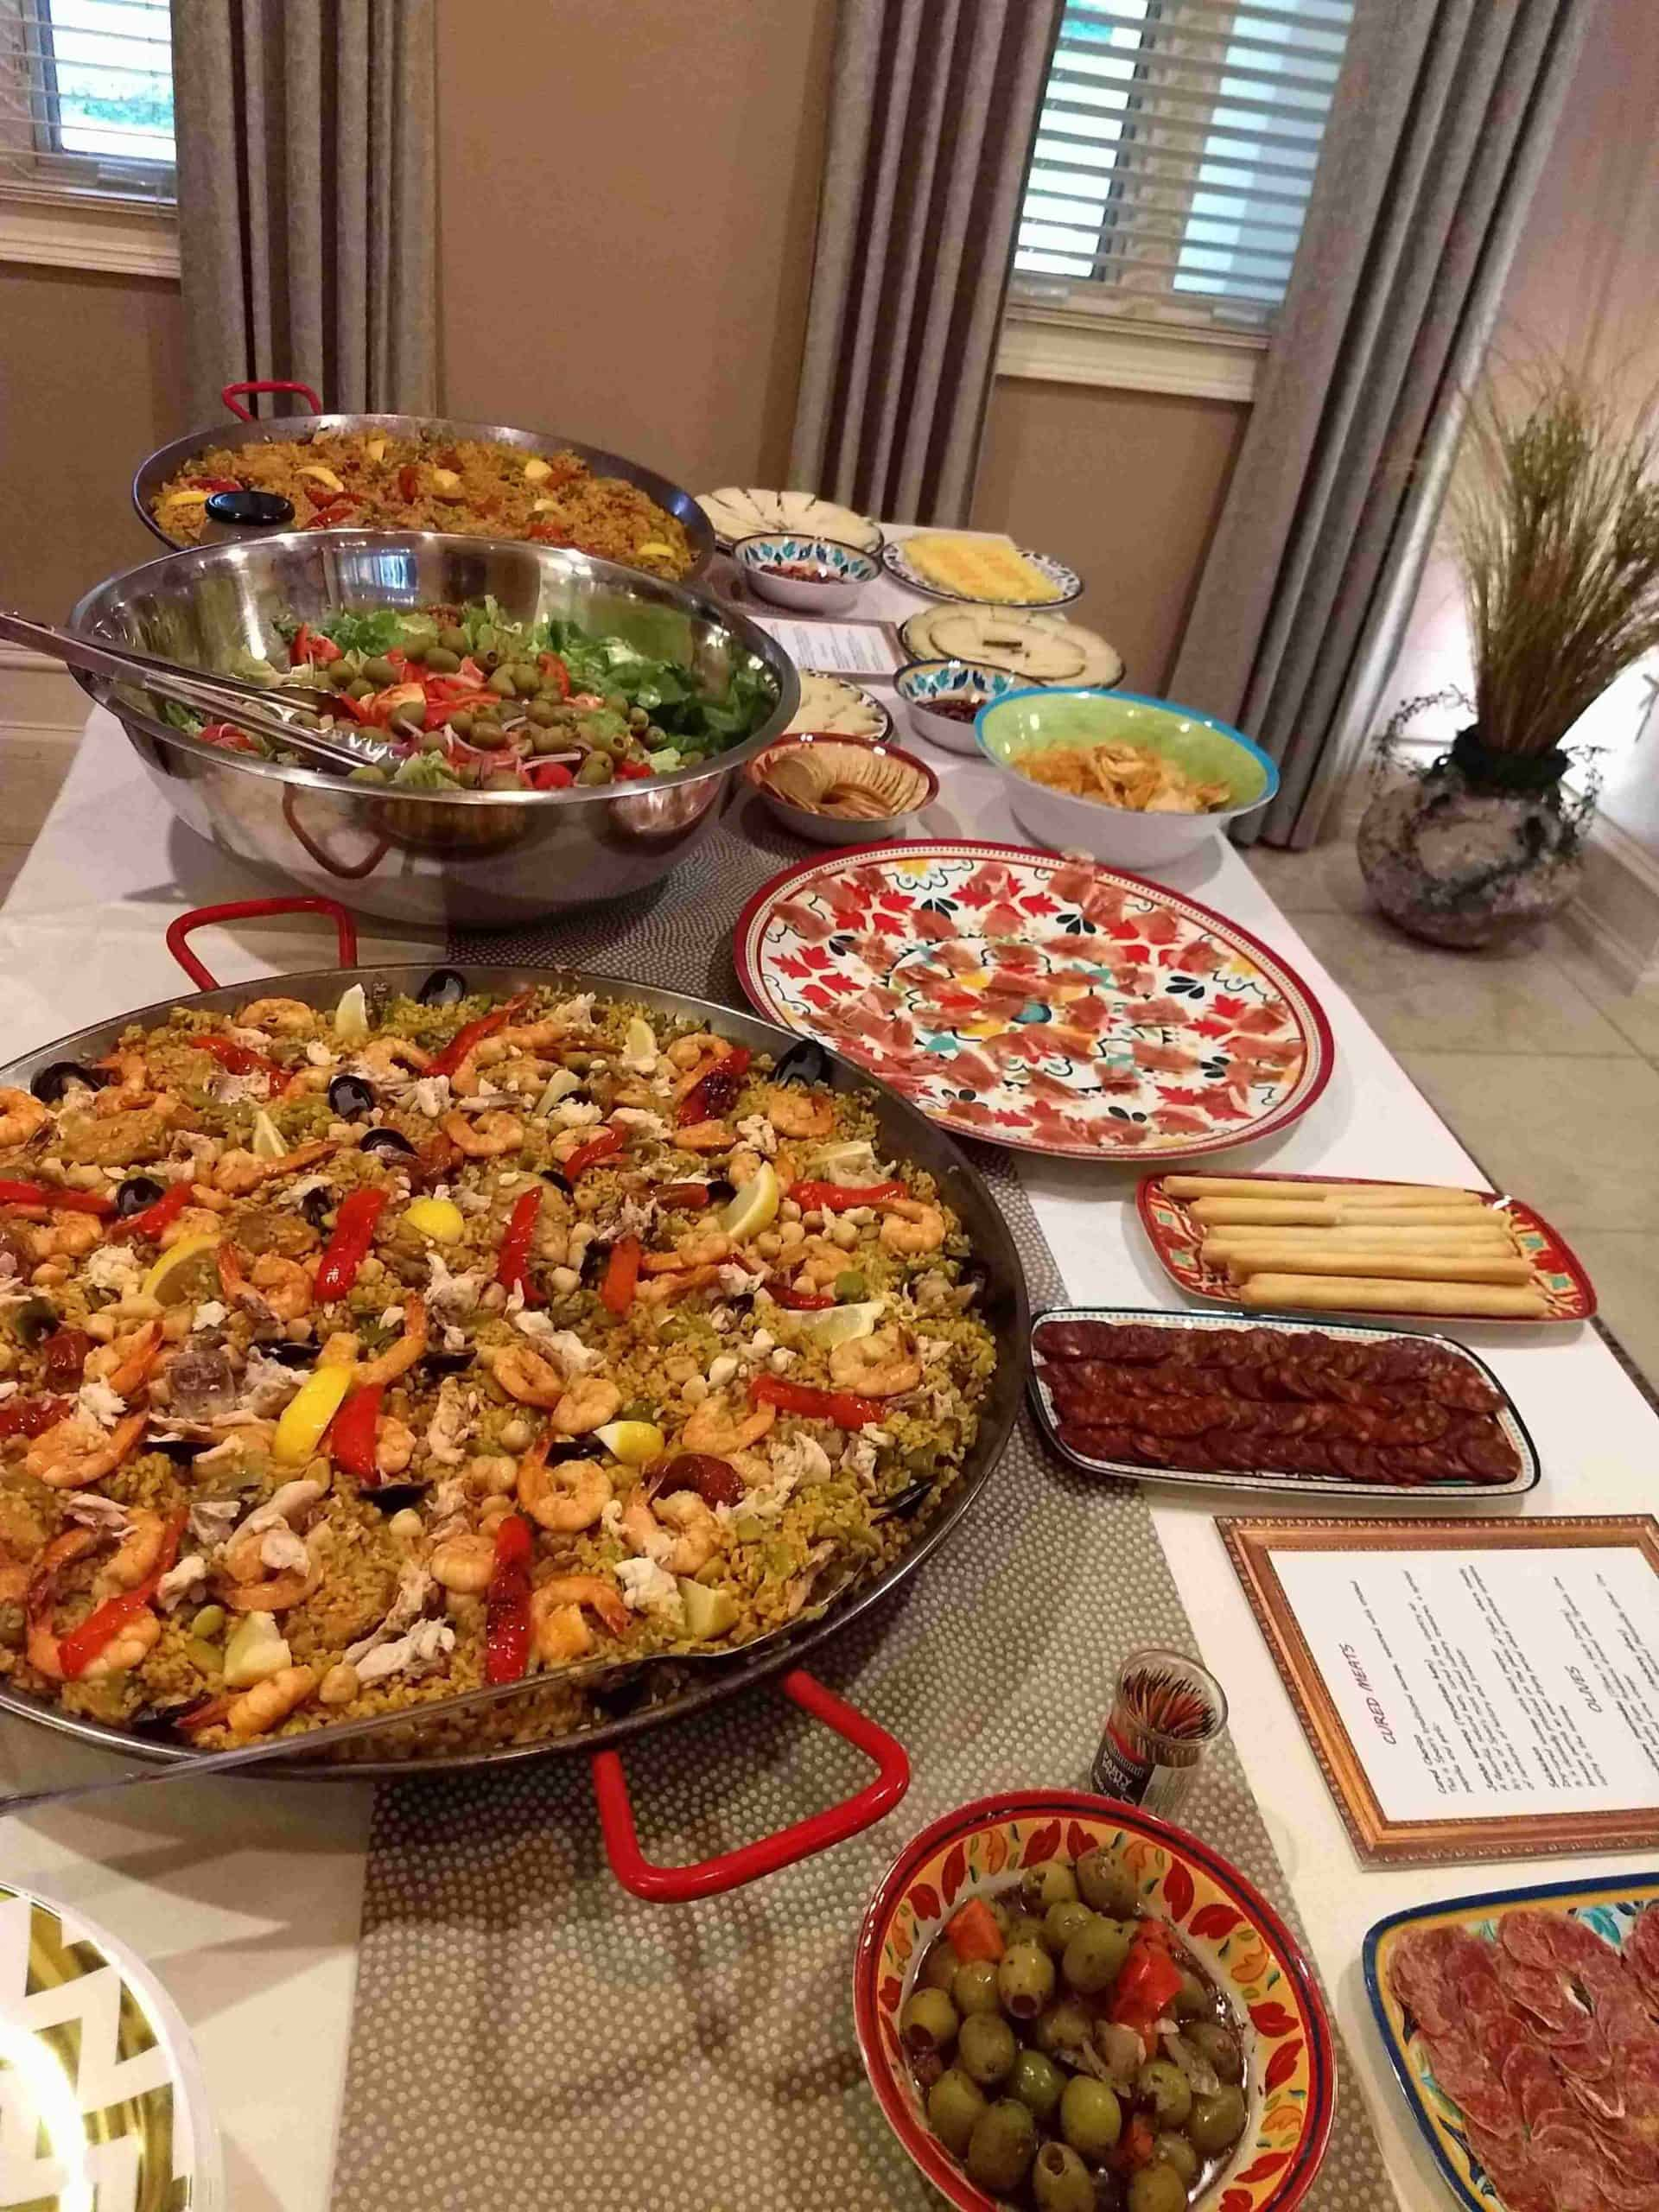 Paella, salad and tapas